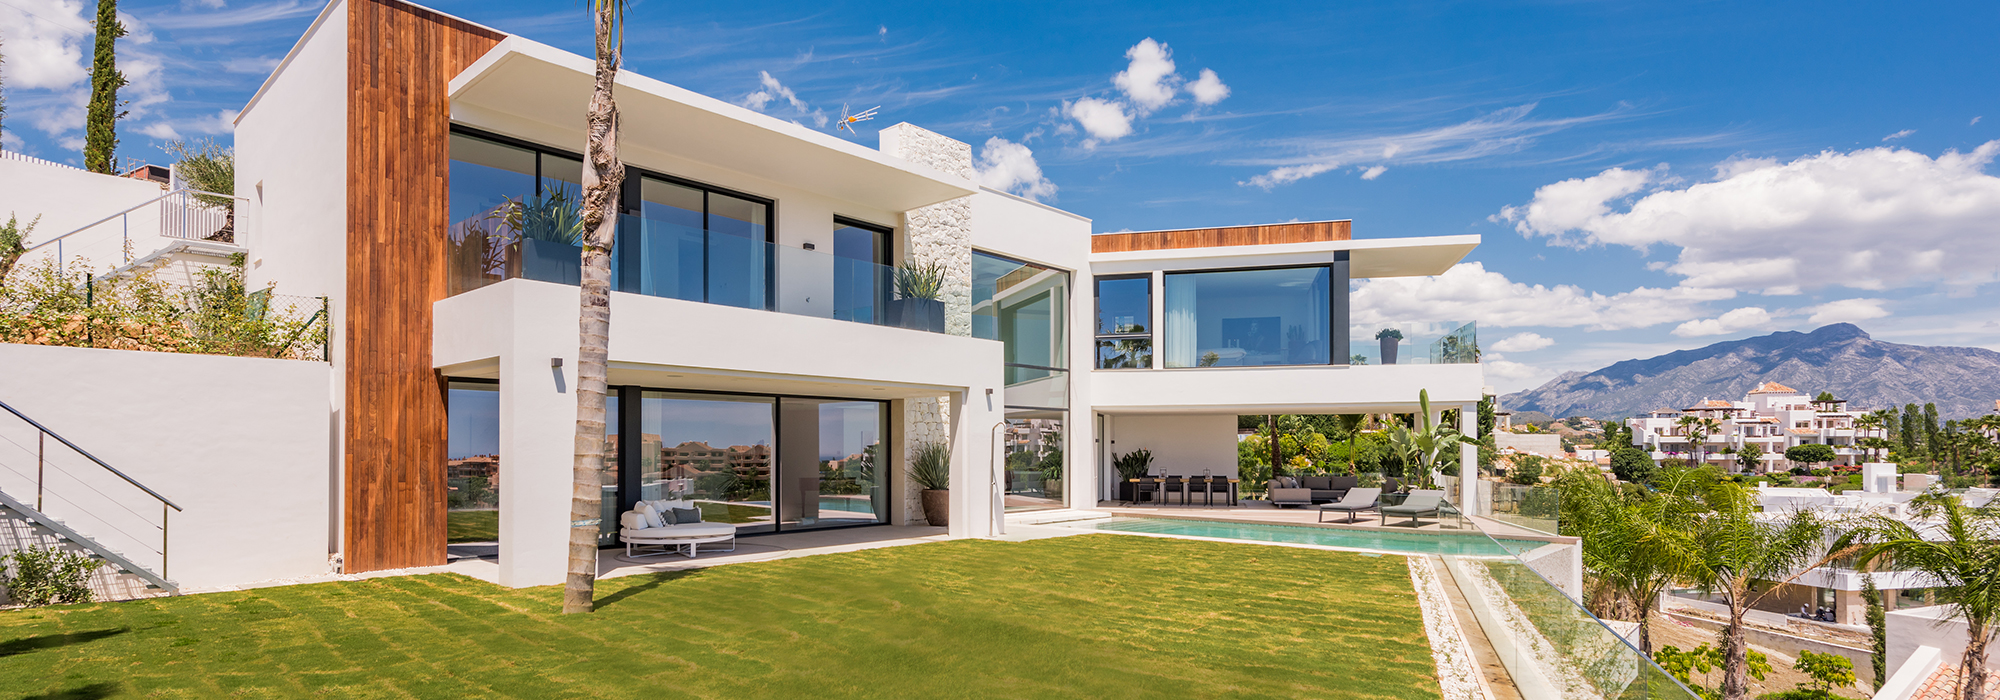 6 bedroom contemporary Villa in La Alquería